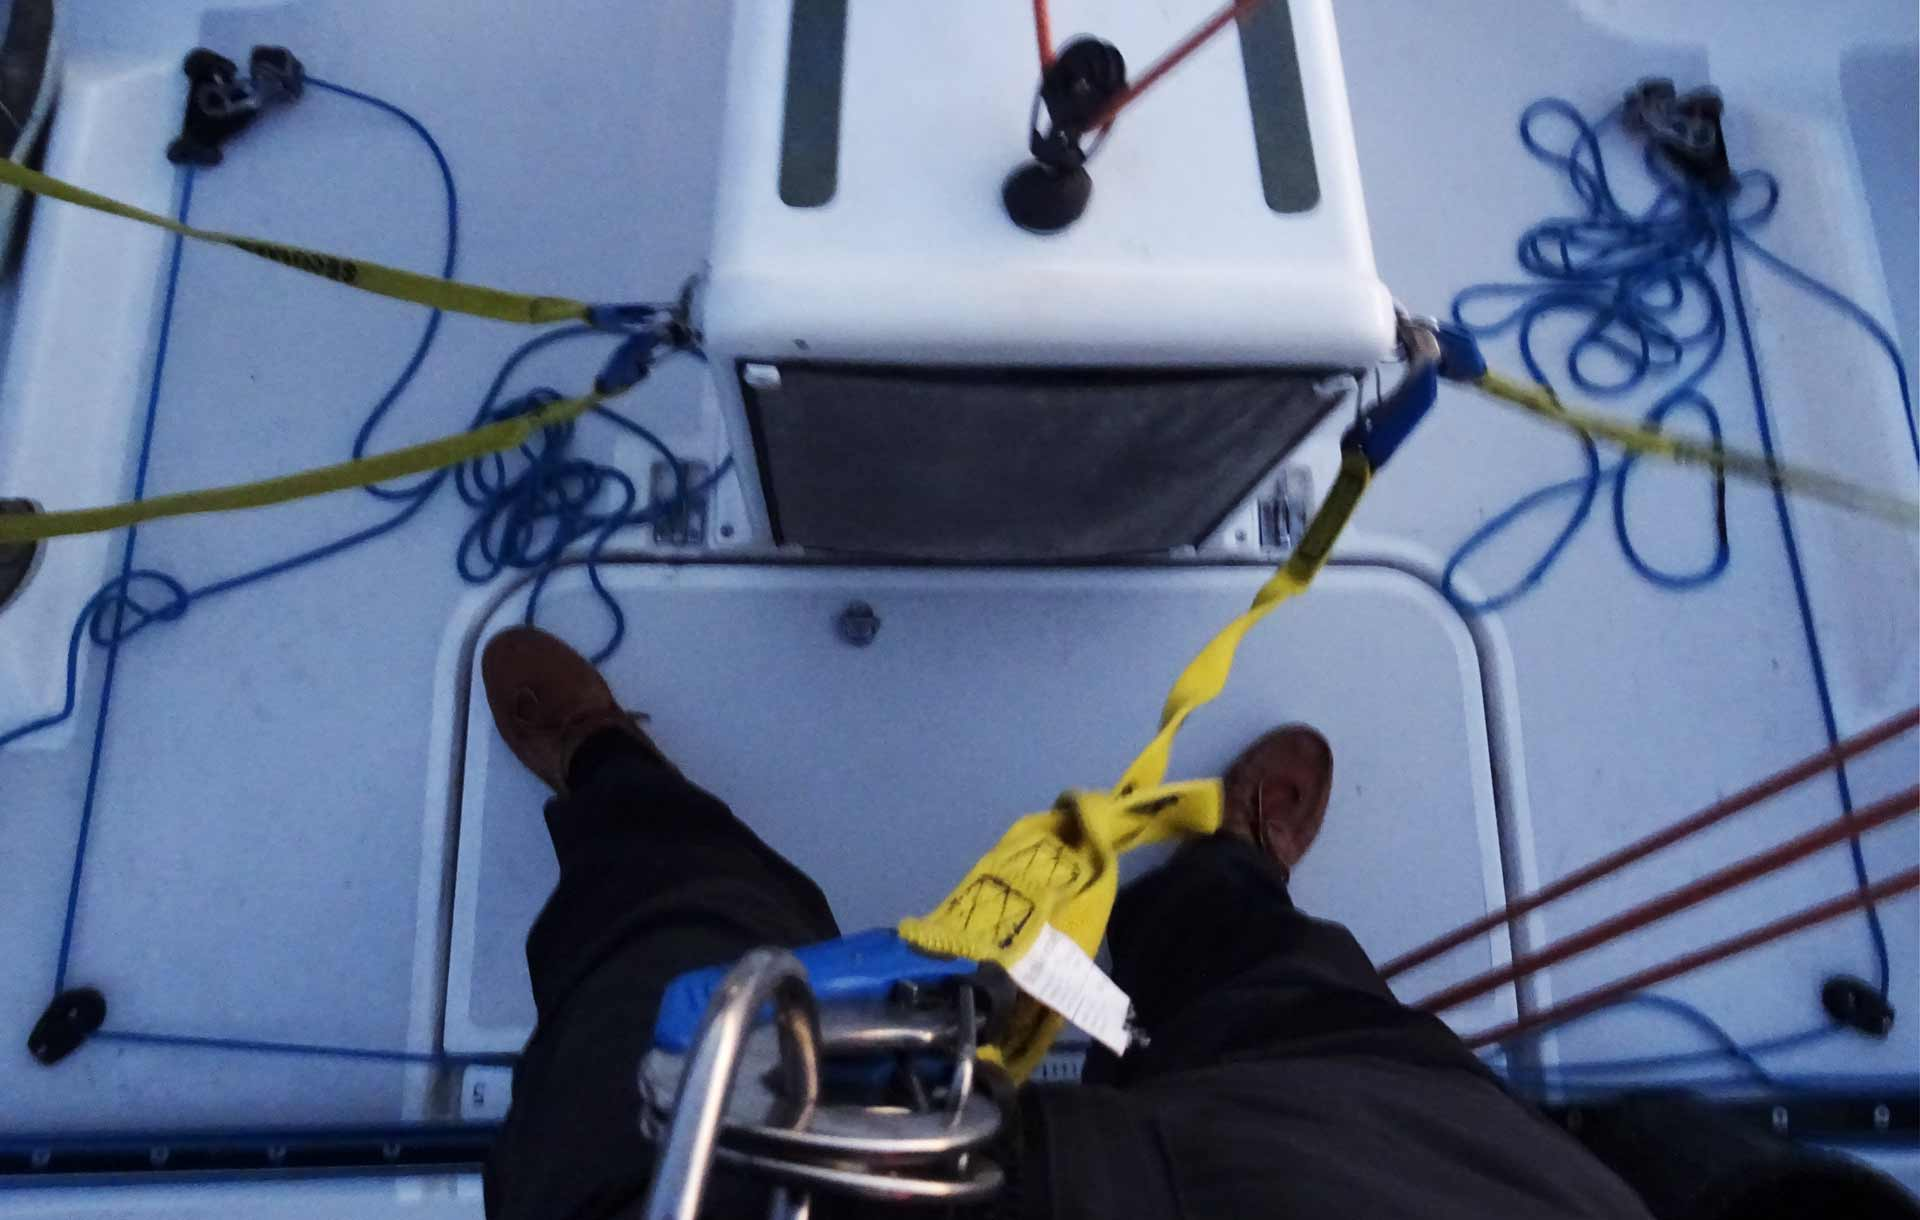 Swell, 25 knots wind: Time for the Lifebelts!